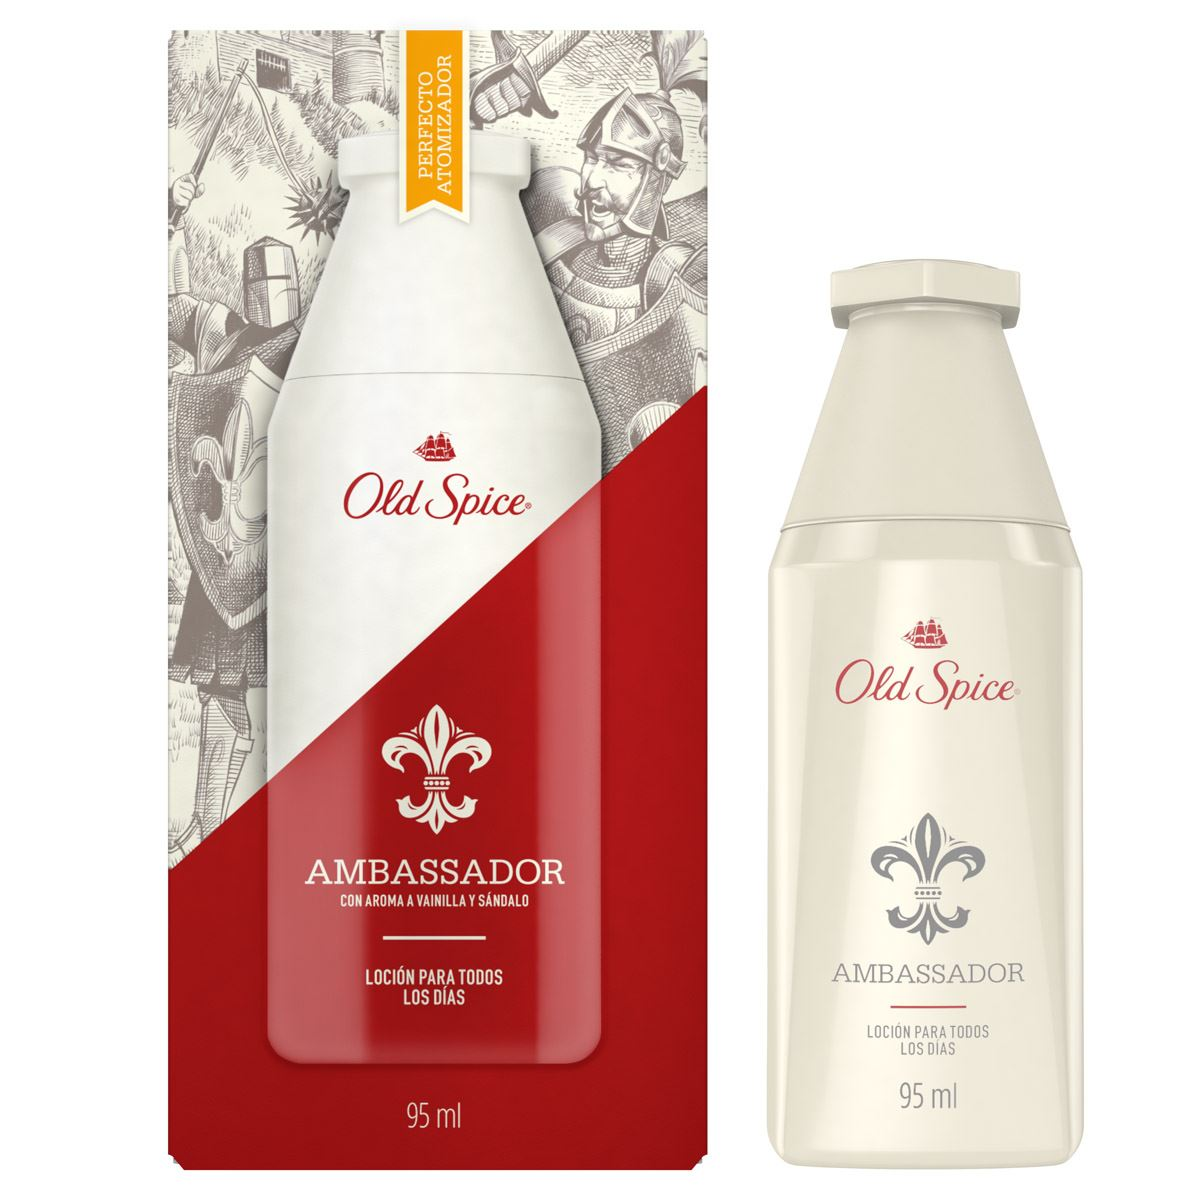 Loción ambassador spy 95 ml old spice  - Sanborns